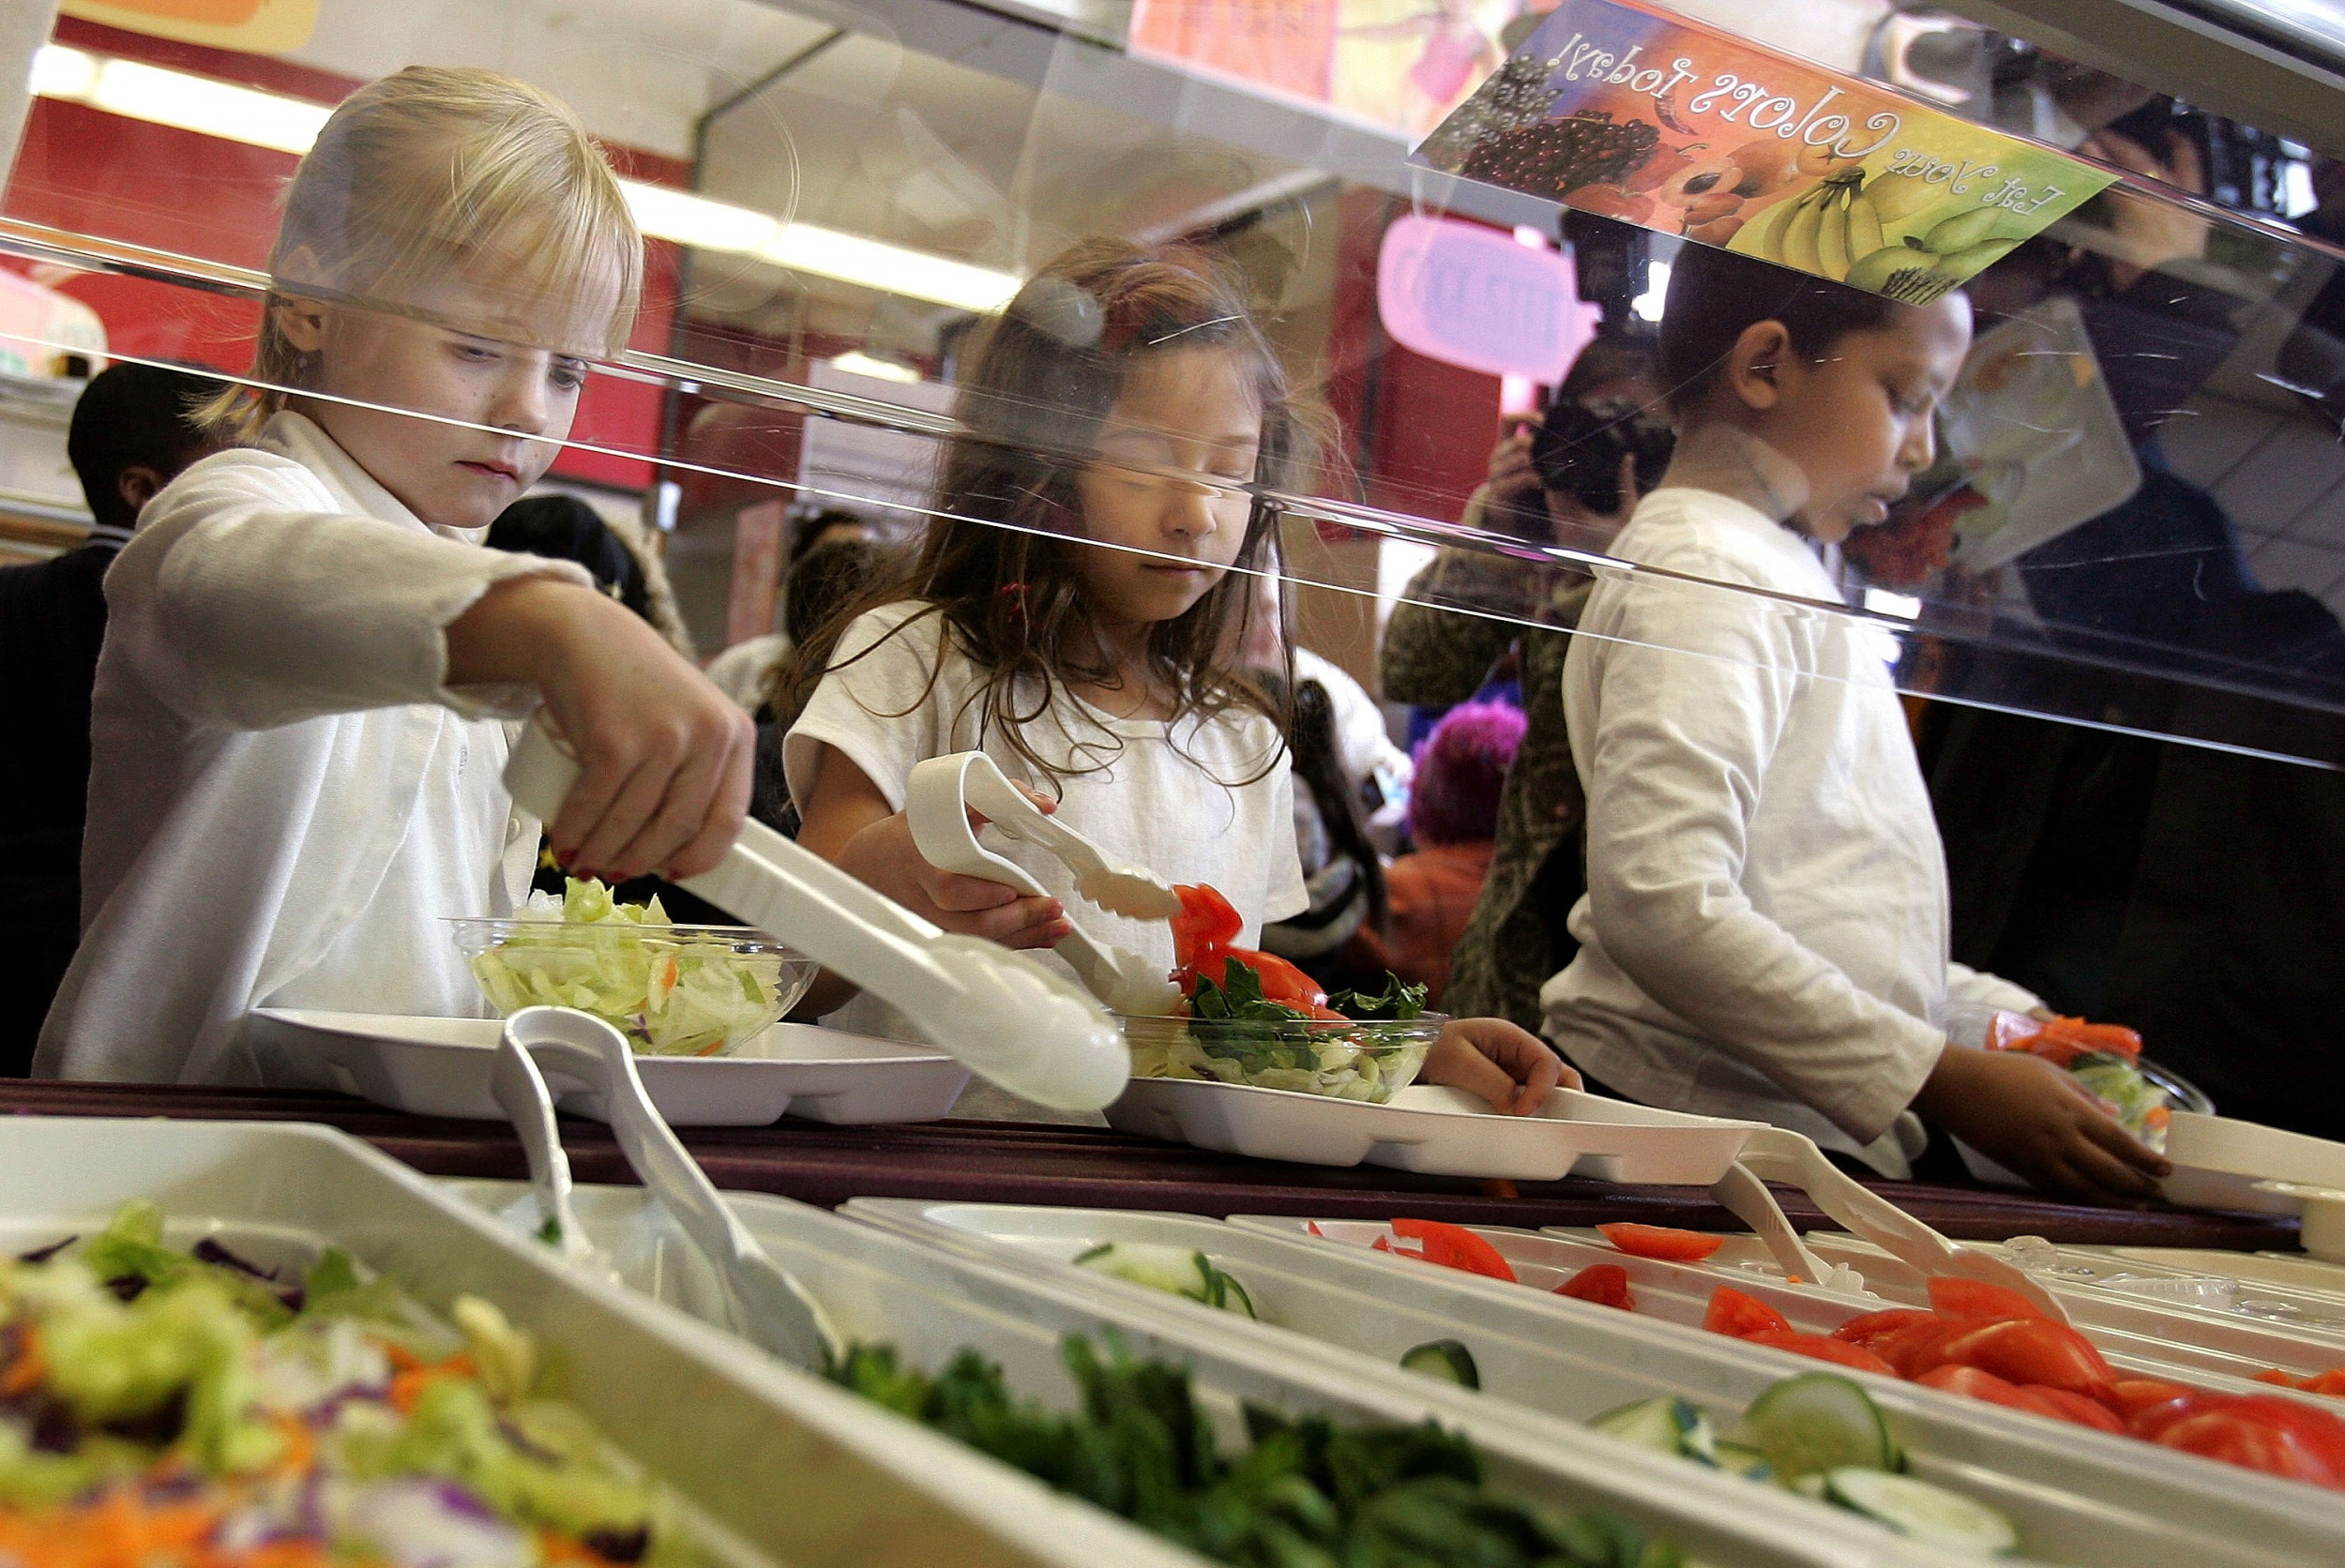 free lunch program at school  »  7 Image »  Awesome ..!